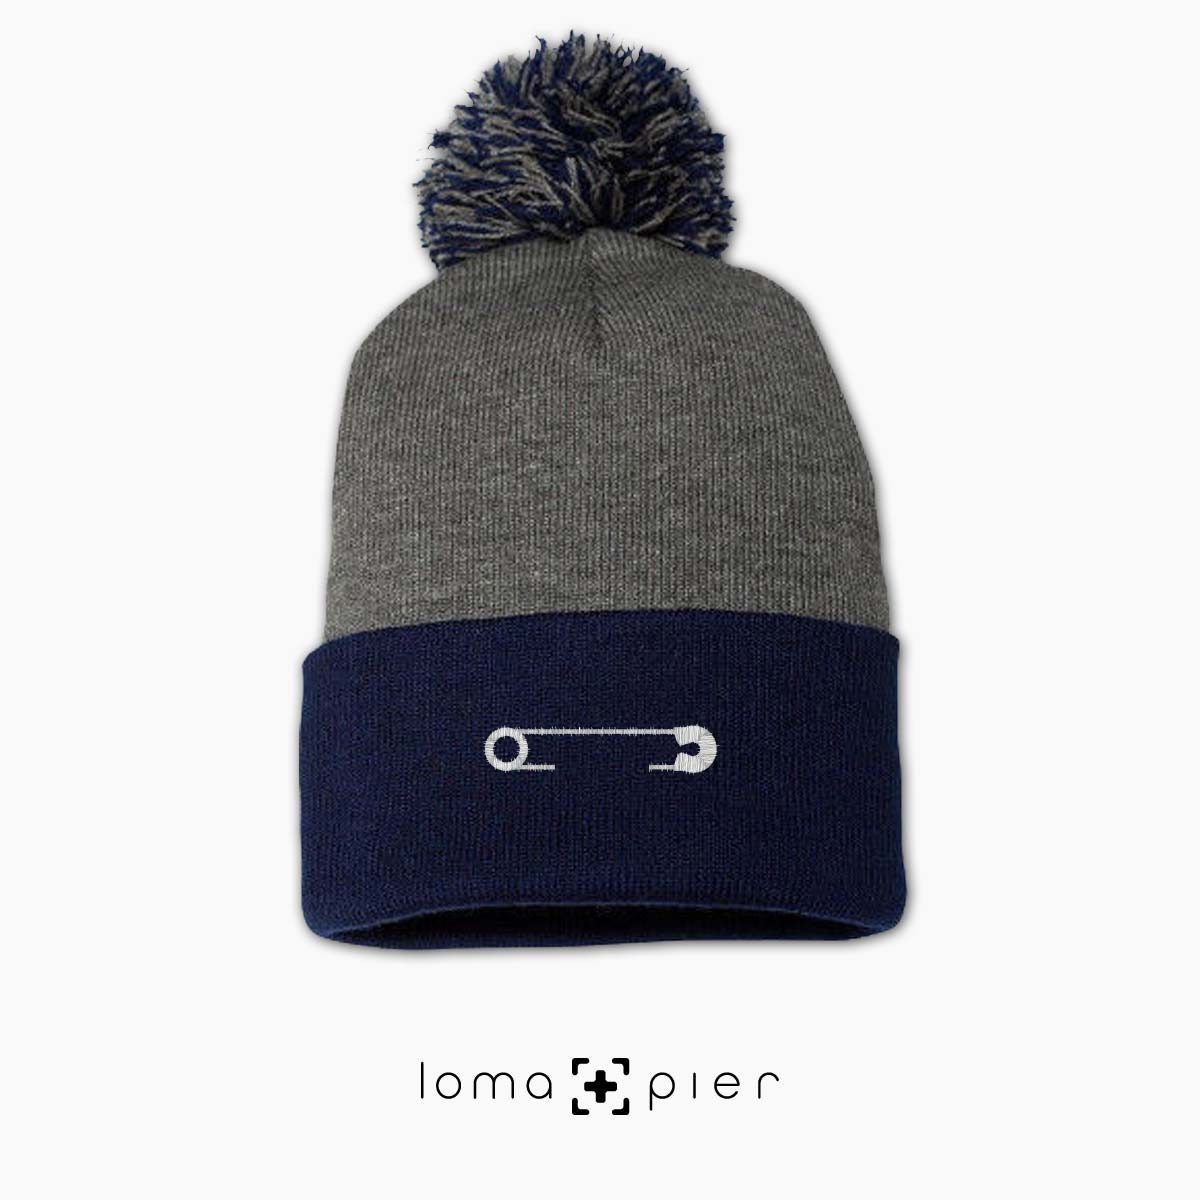 SAFETY PIN icon embroidered on a heather grey and navy blue pom pom beanie with white thread by loma+pier hat store